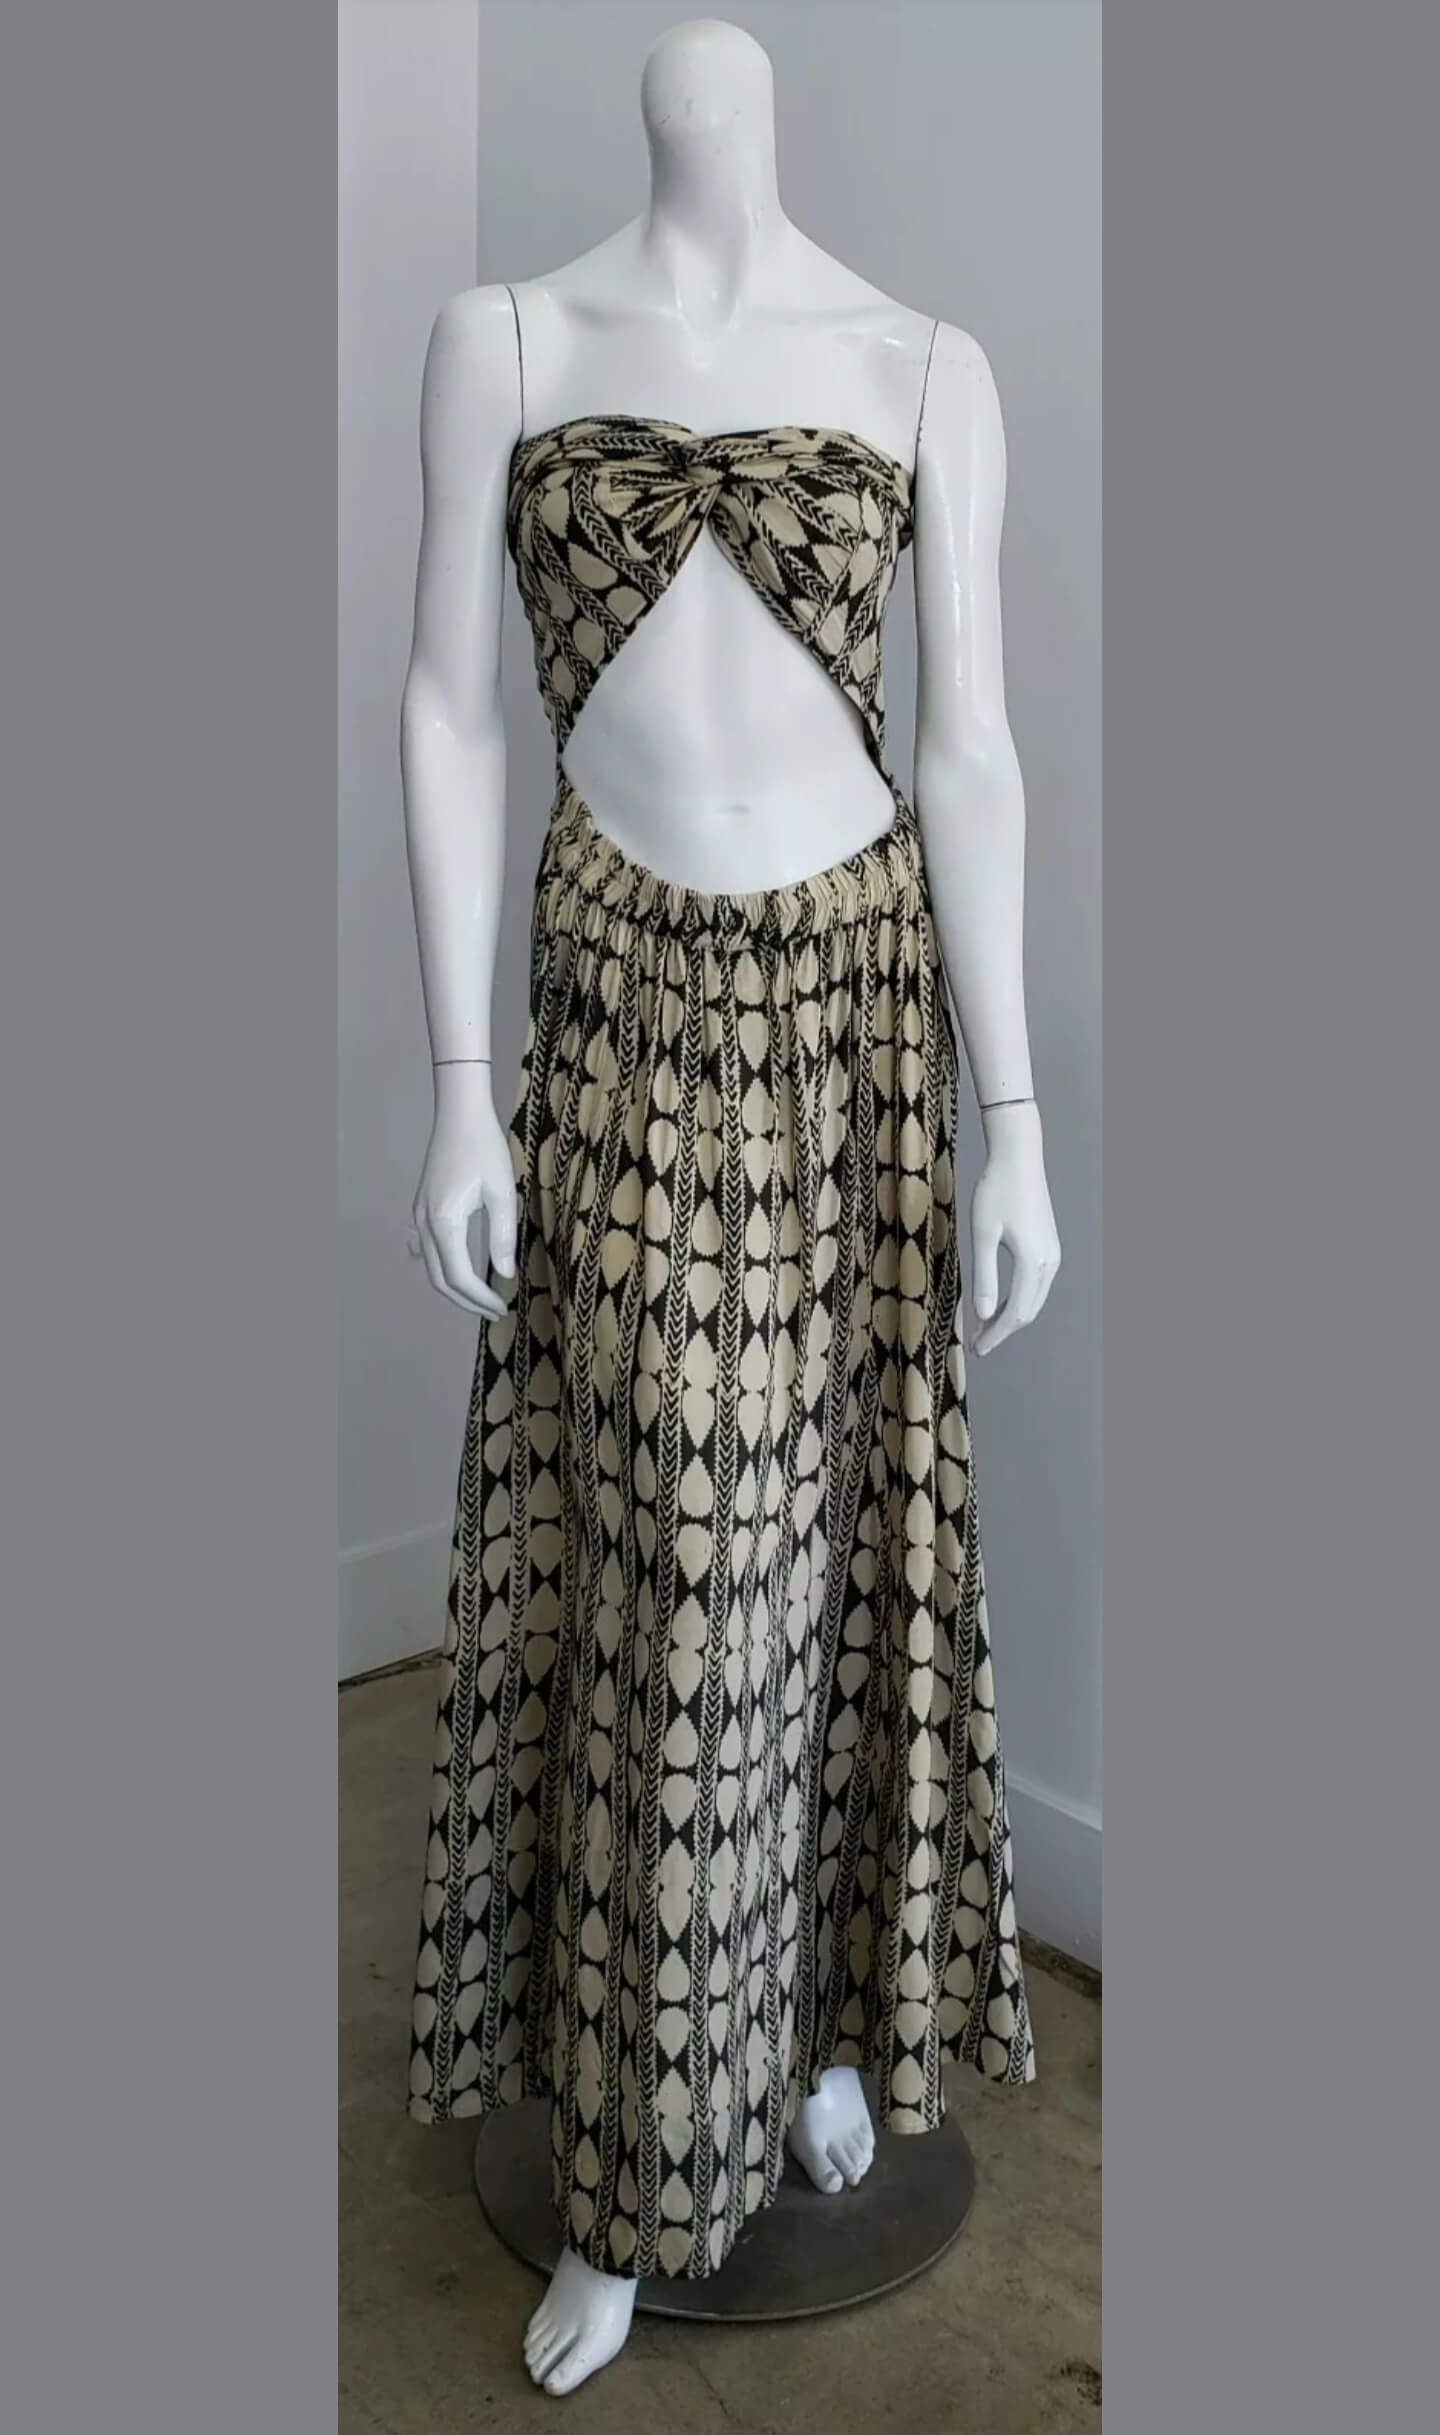 Vintage Ethnic Taupe Hunter Green Leaf Print Multi Functional One Shoulder Strapless Tie Festival Maxi Dress